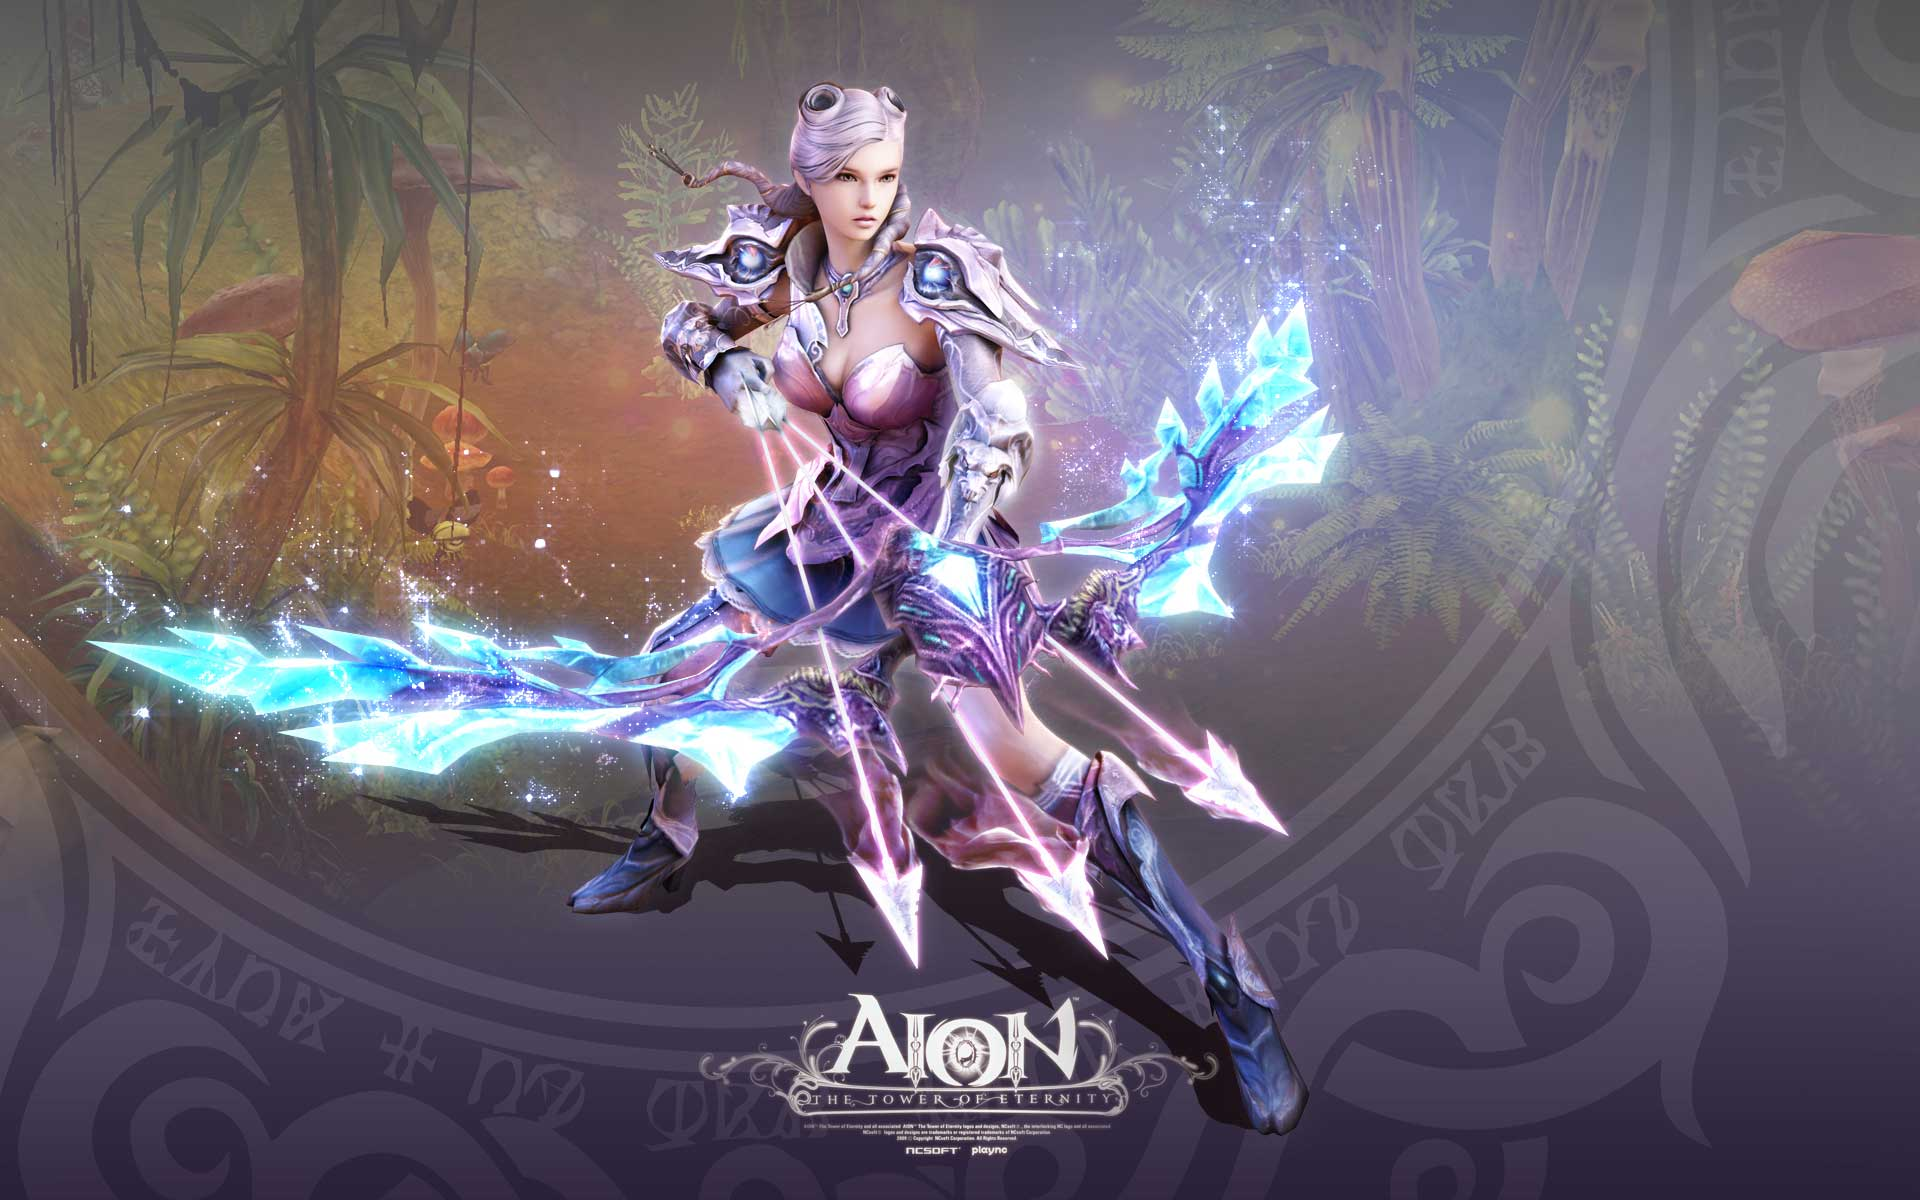 Home Aion AION August Calendar wallpaper 86 1920x1200 1920x1200